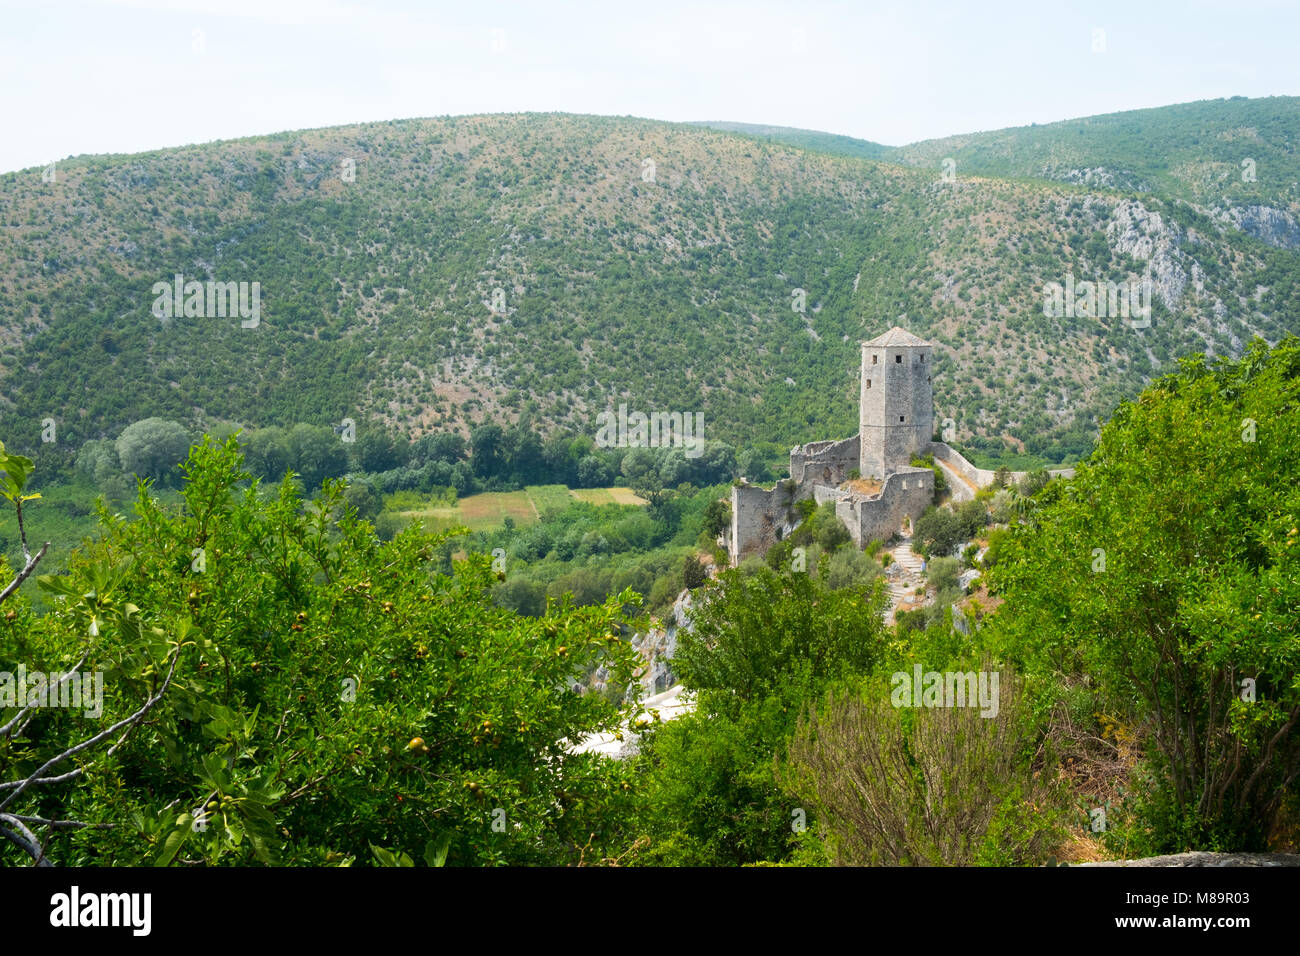 Old town of Pocitelj, Bosnia and Herzegovina - Stock Image